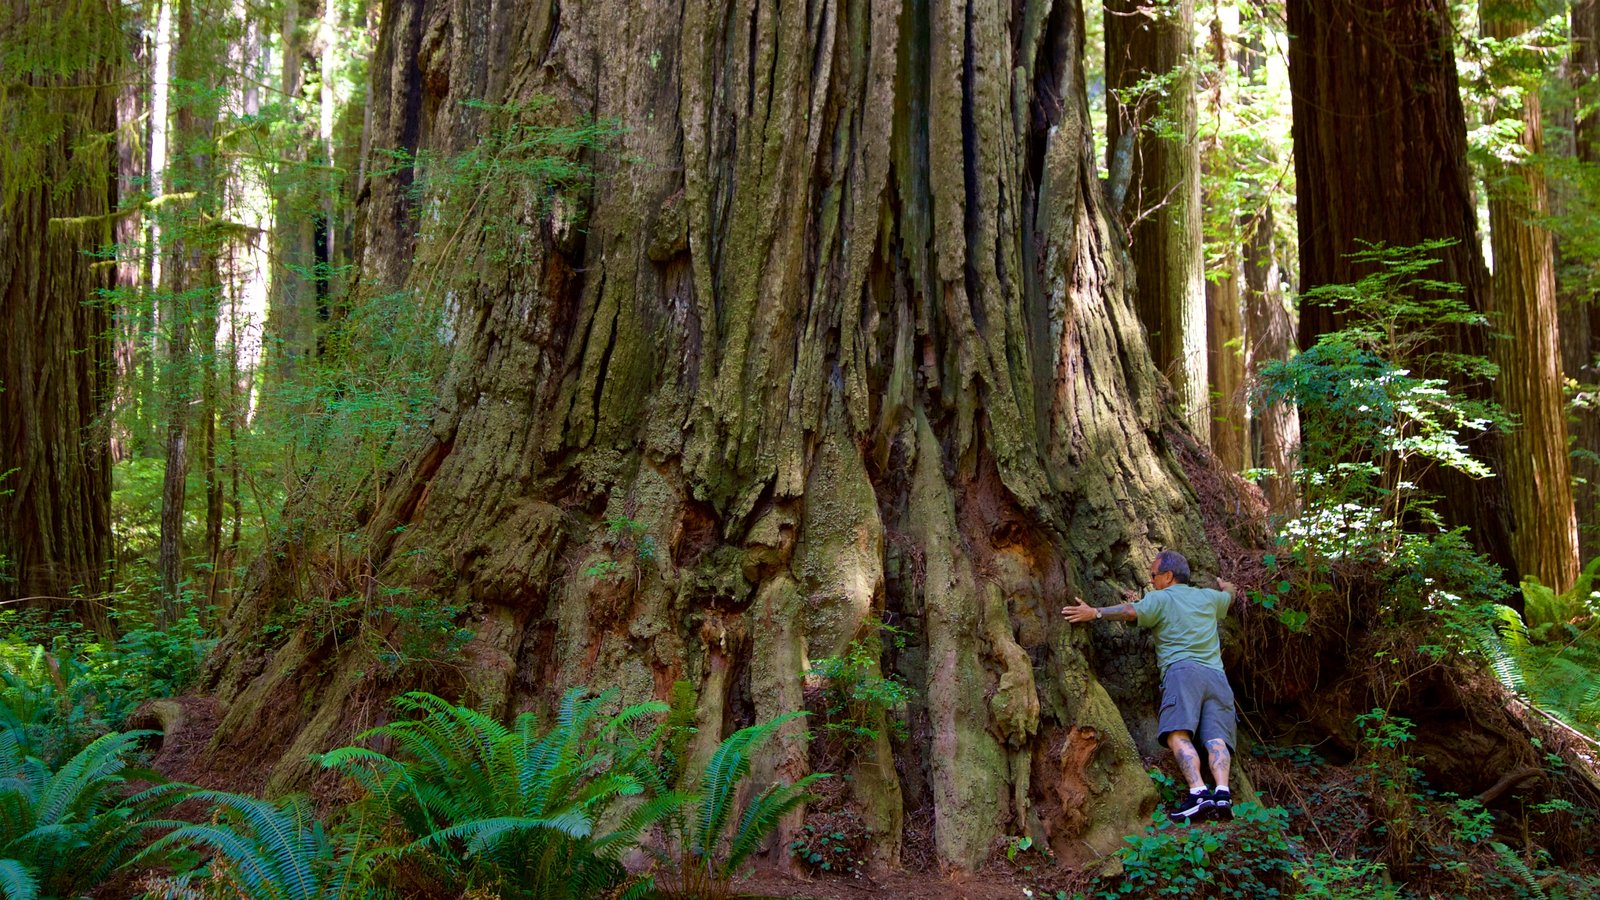 Redwood National and State Parks featuring forests as well as an individual male